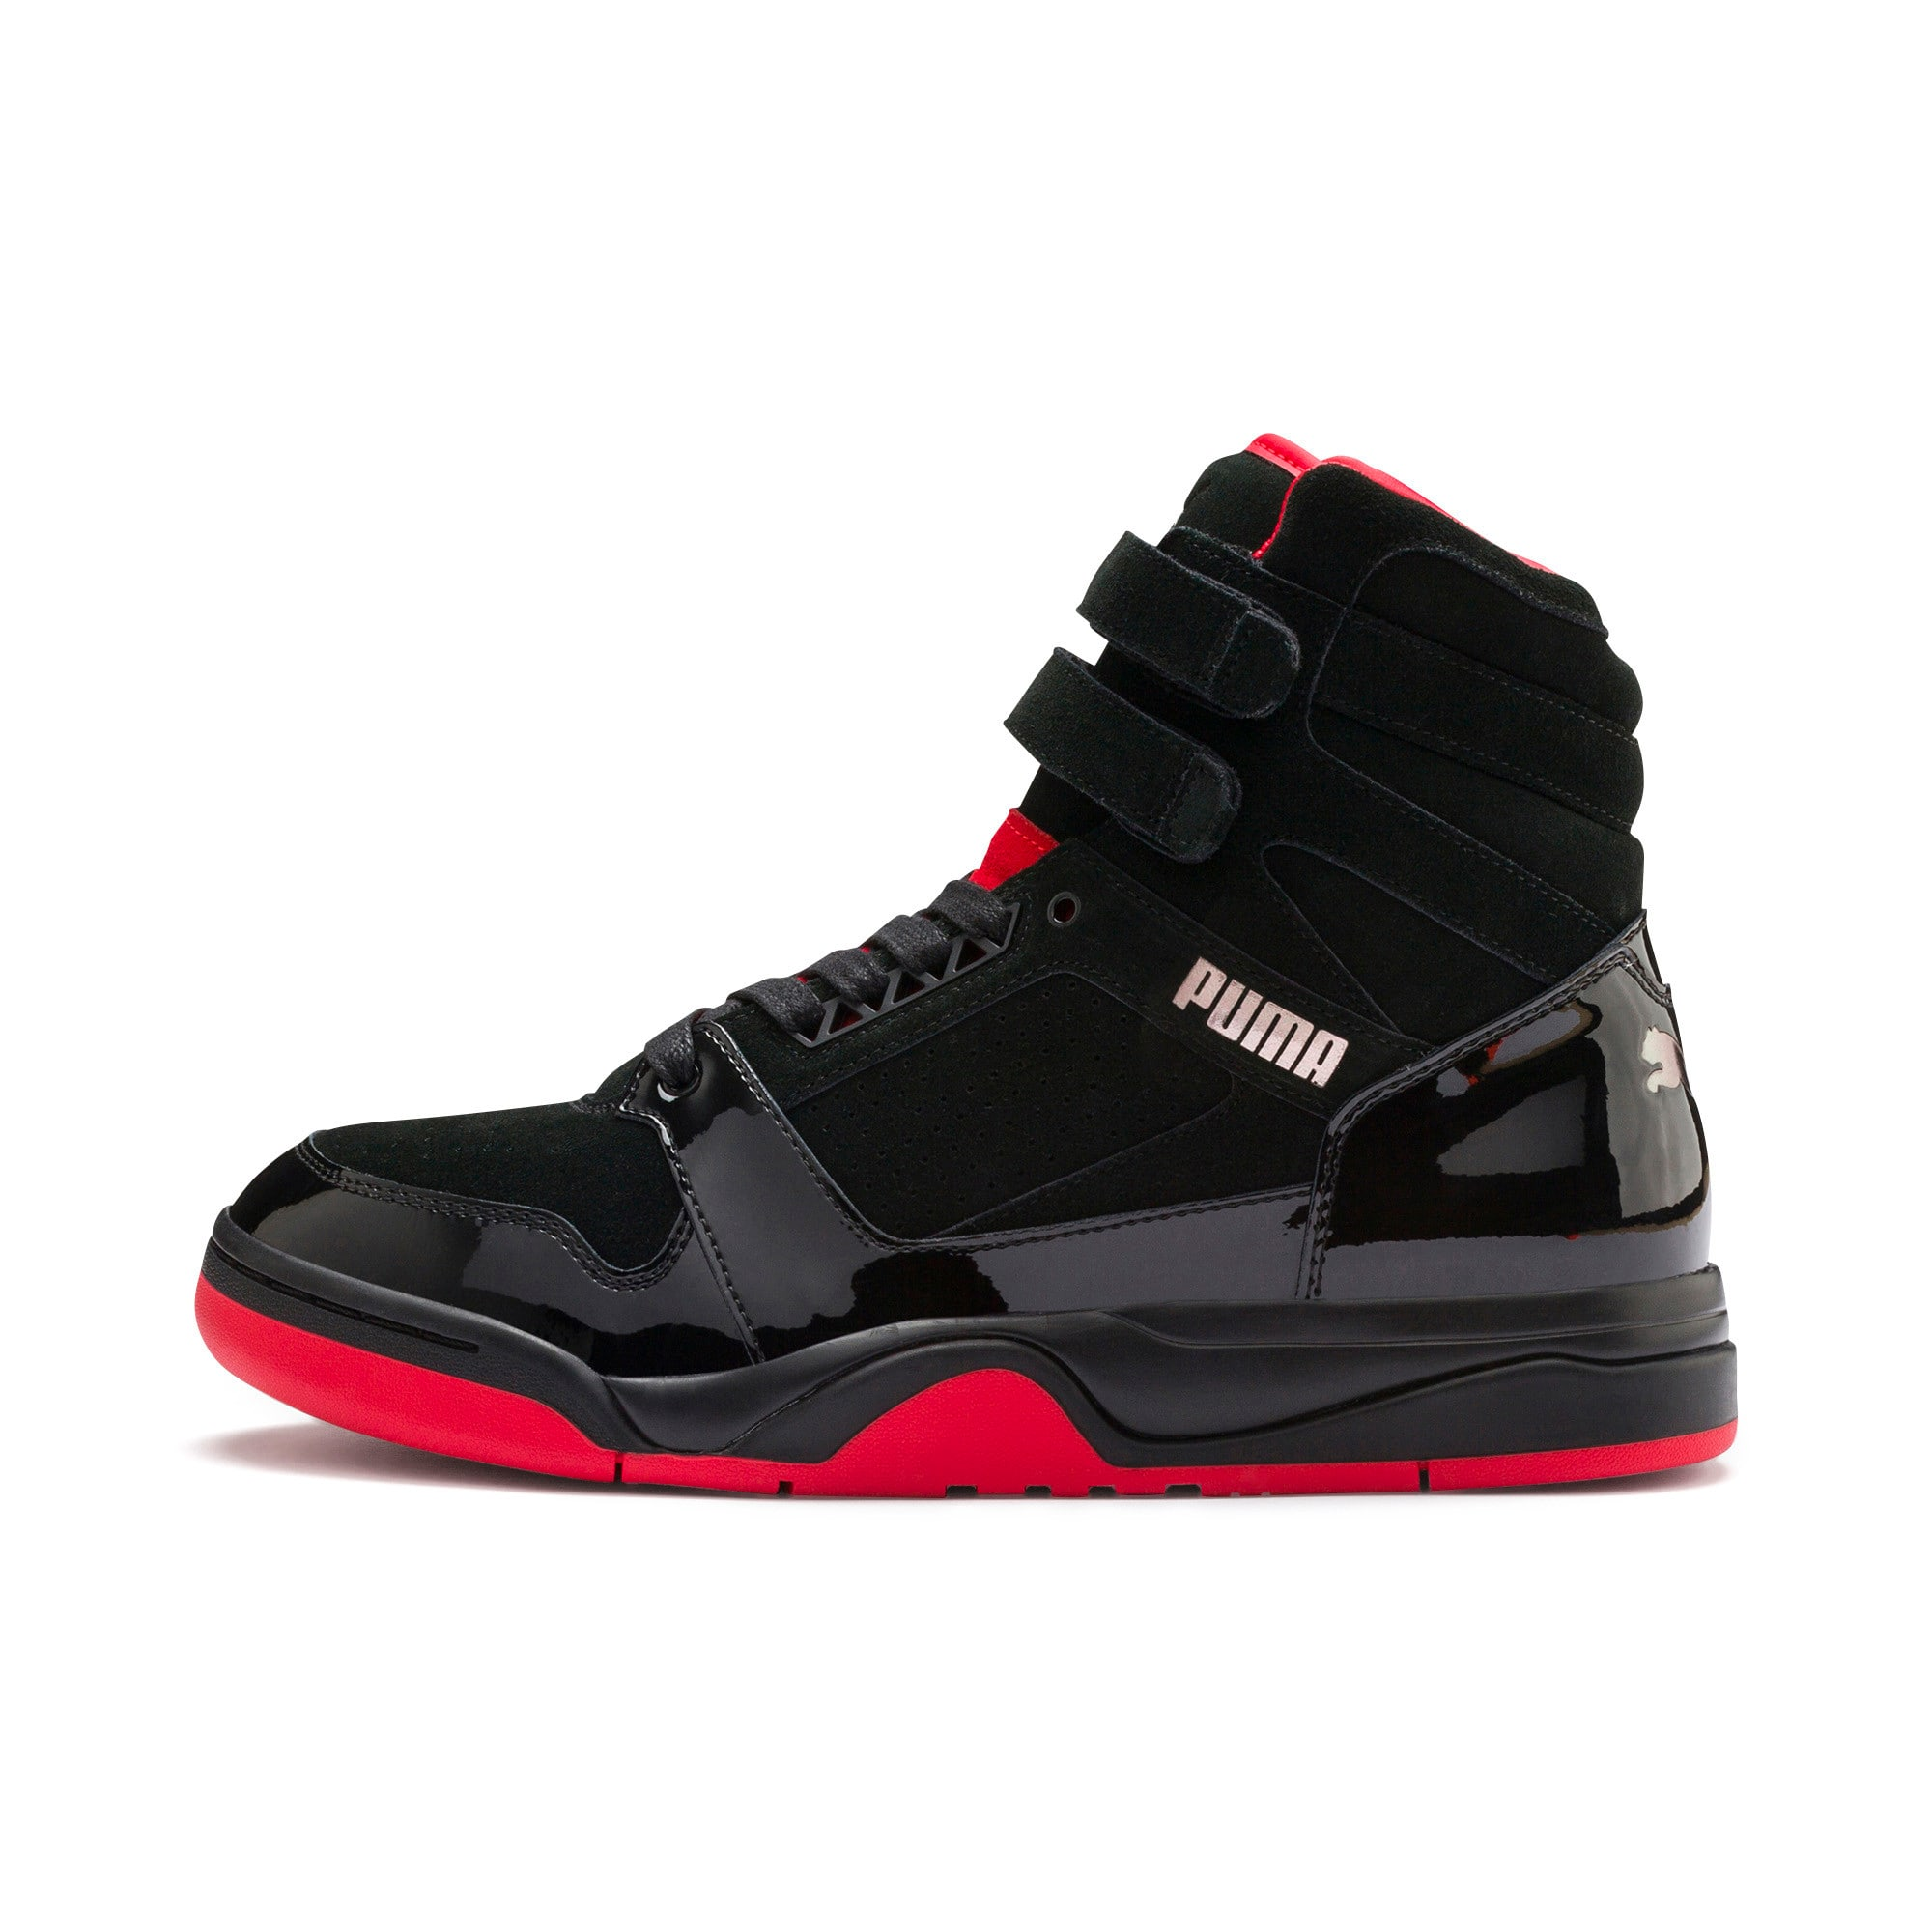 Thumbnail 1 of Palace Guard Red Carpet Mid-Cut Basketball Shoes, Puma Black-Risk Red-Bronze, medium